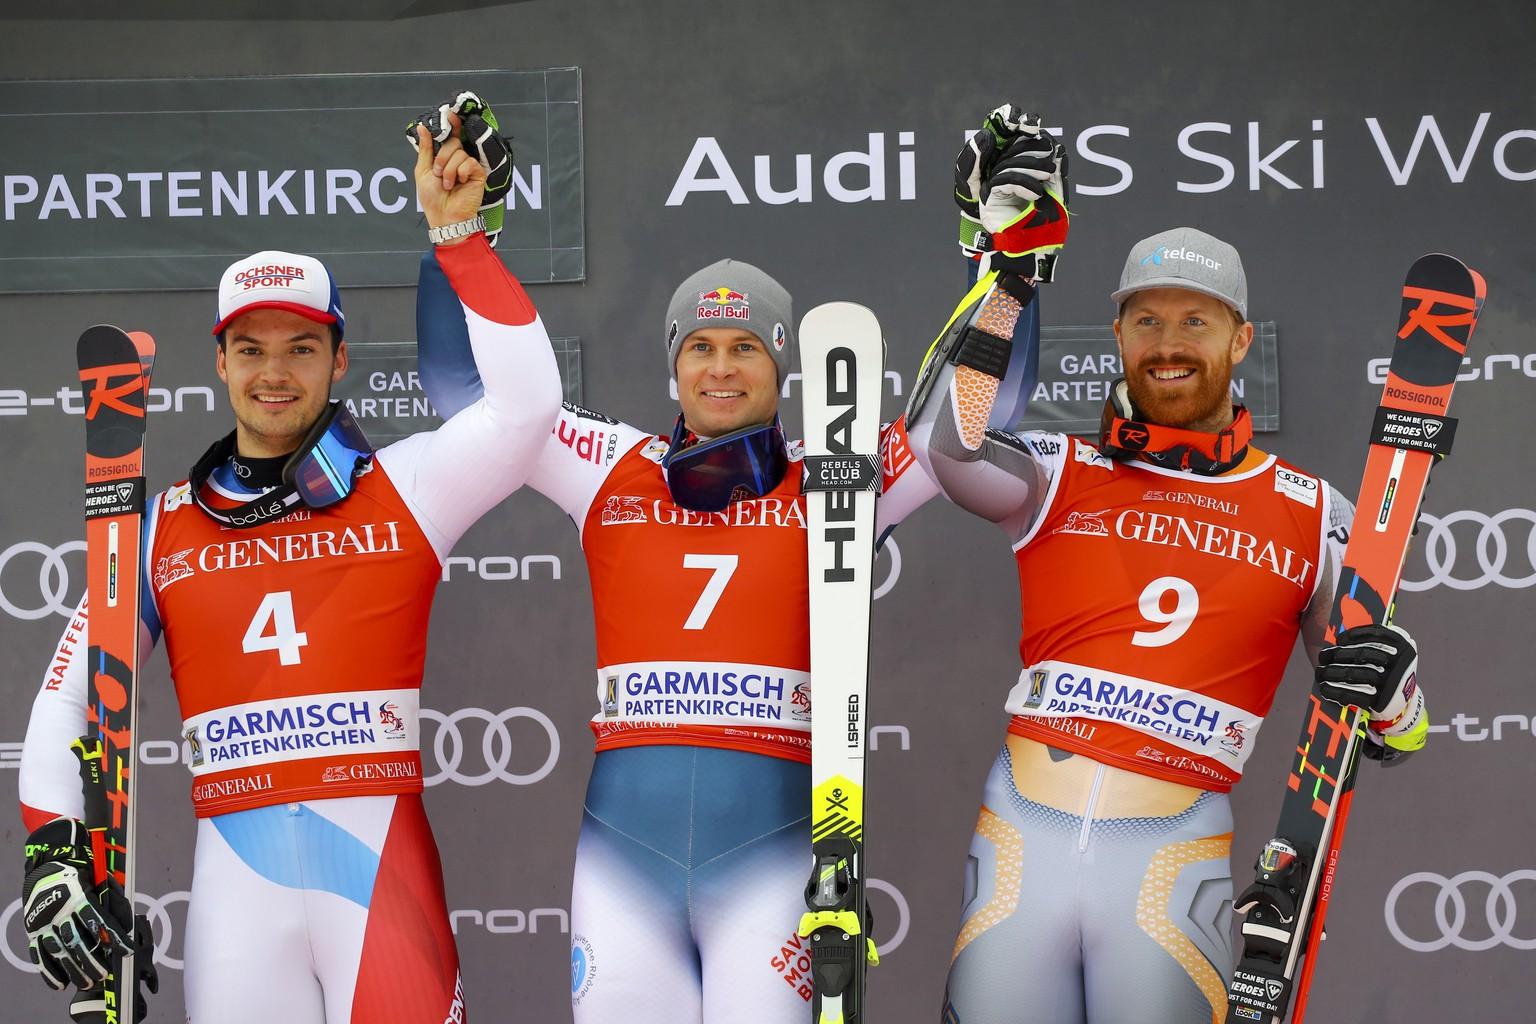 France's Alexis Pinturault, center, winner of an alpine ski, men's World Cup giant slalom, celebrates on the podium with second-placed Switzerland's Loic Meillard, left, and third-placed Norway's Leif Kristian Nestvold Haugen, in Garmisch Partenkirchen, Germany, Sunday, Feb. 2, 2020. (AP Photo/Marco Trovati)